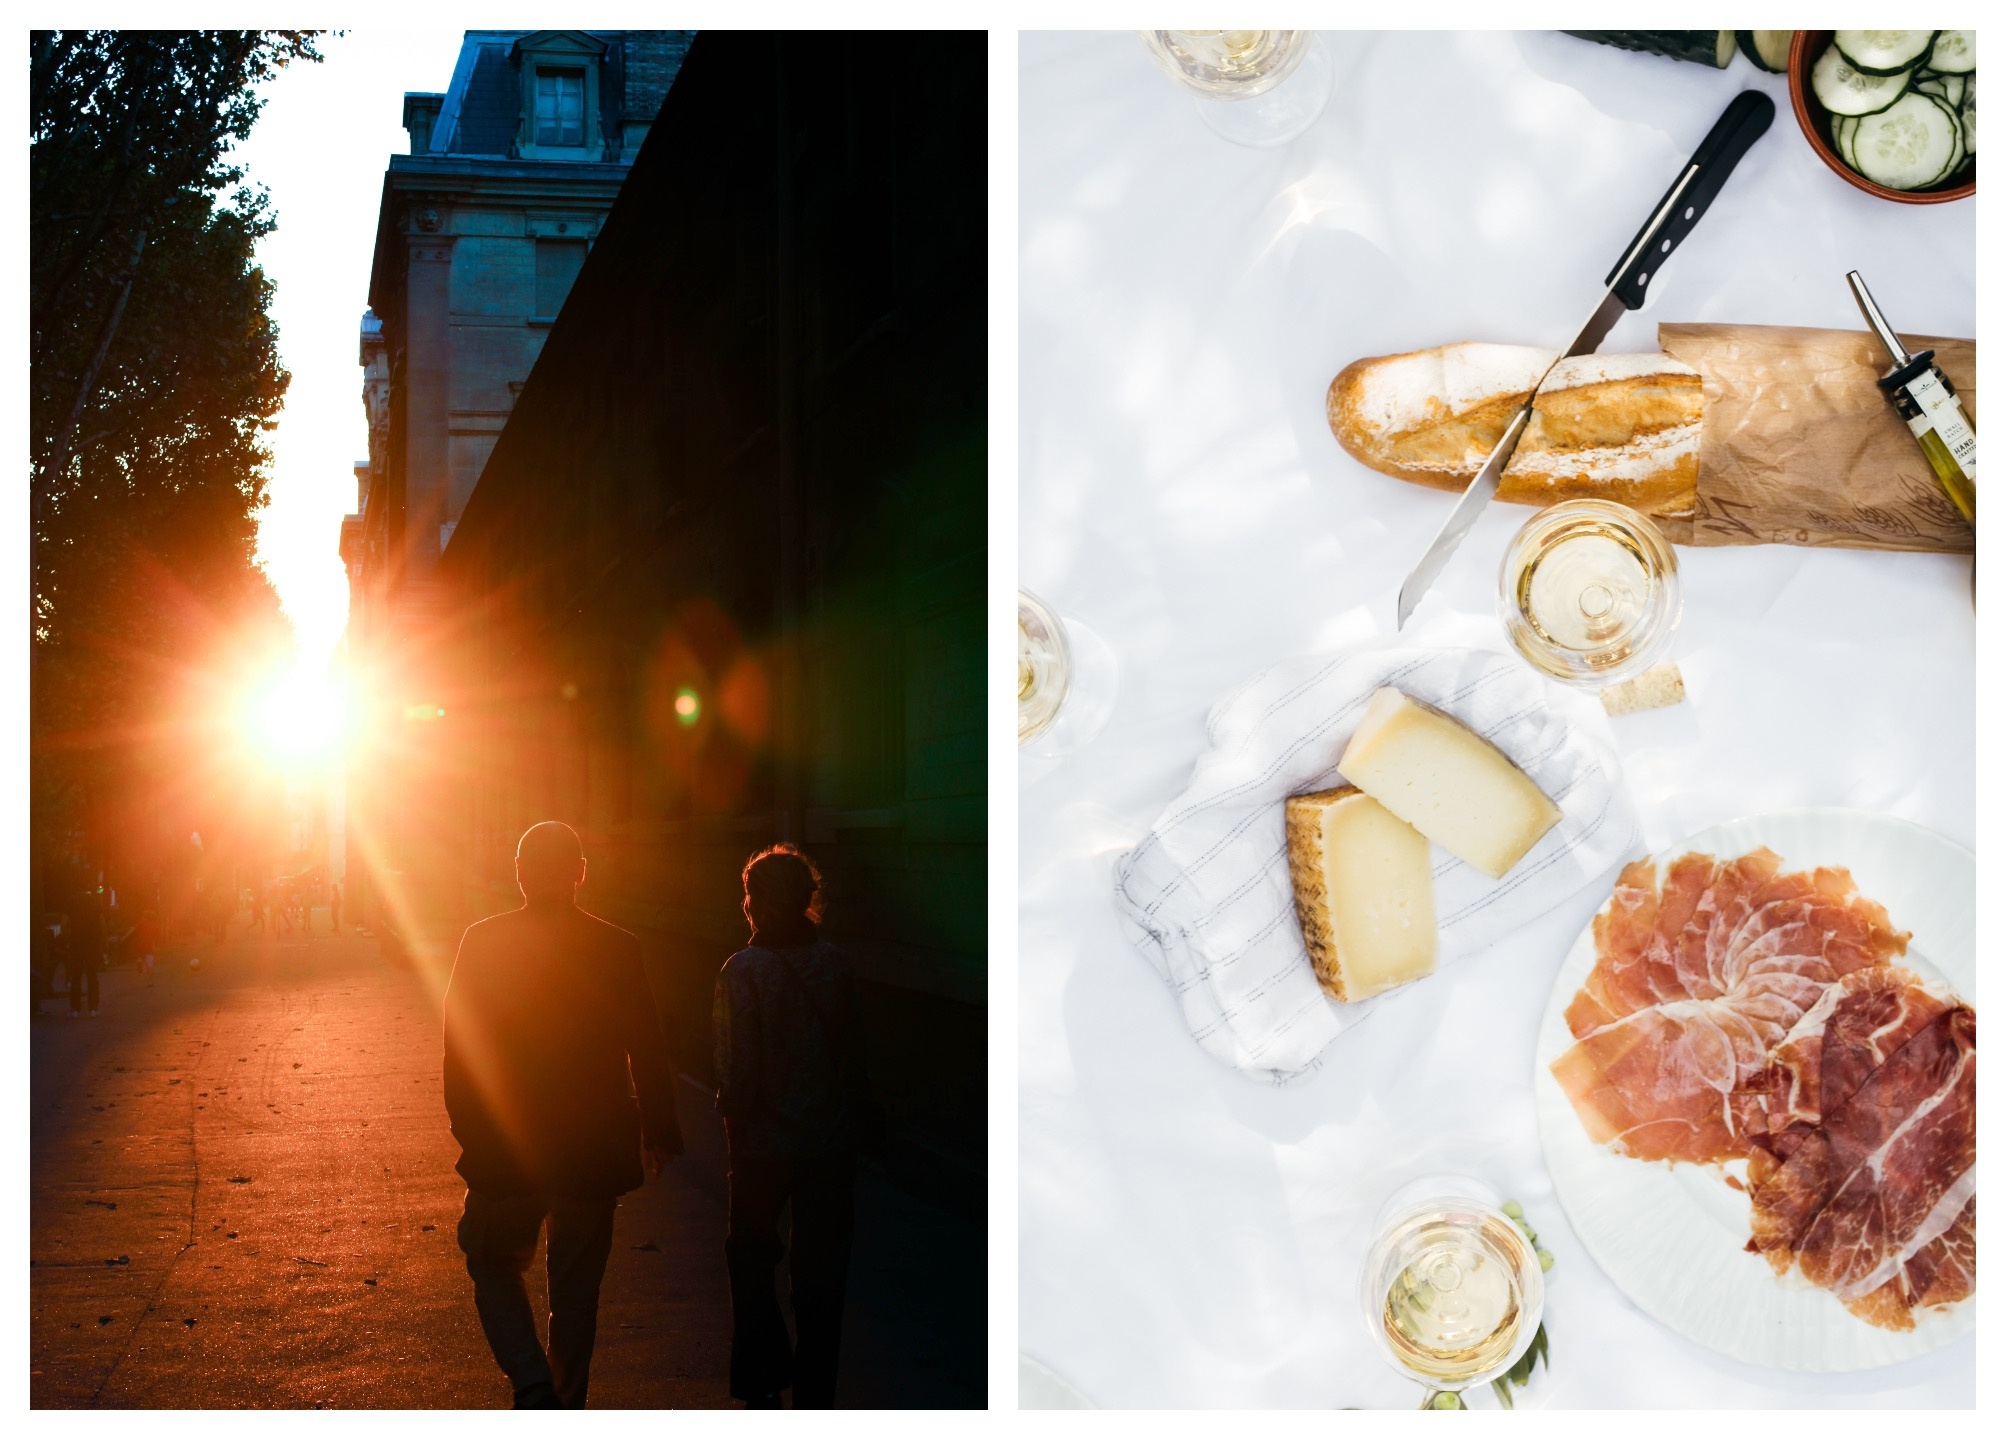 Paris podcast host Oliver Gee tells us how to do Paris, including the best summer spots in the city (left) and the best places for aperitif (right).